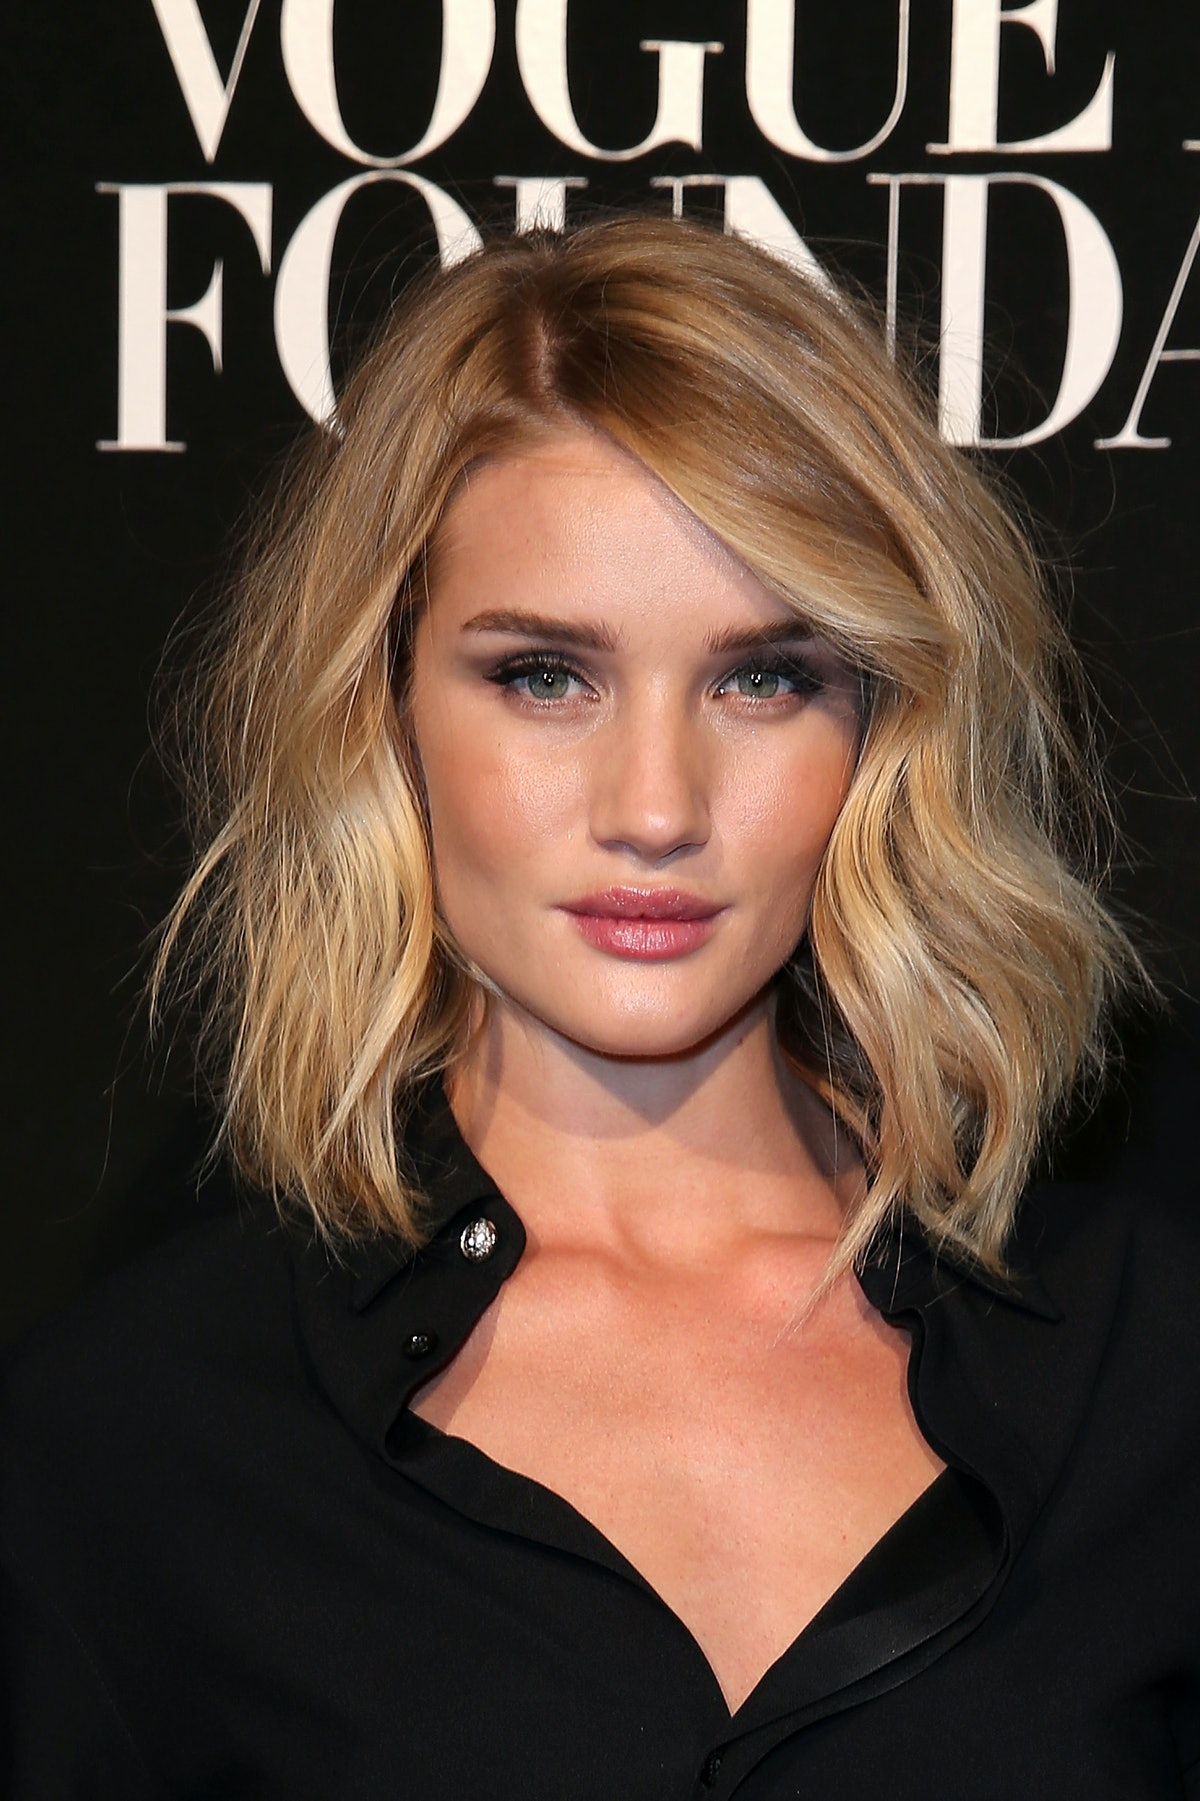 Rosie Huntington-Whiteley  attends the Vogue Paris Foundation Gala at Palais Galliera on July 6, 201...